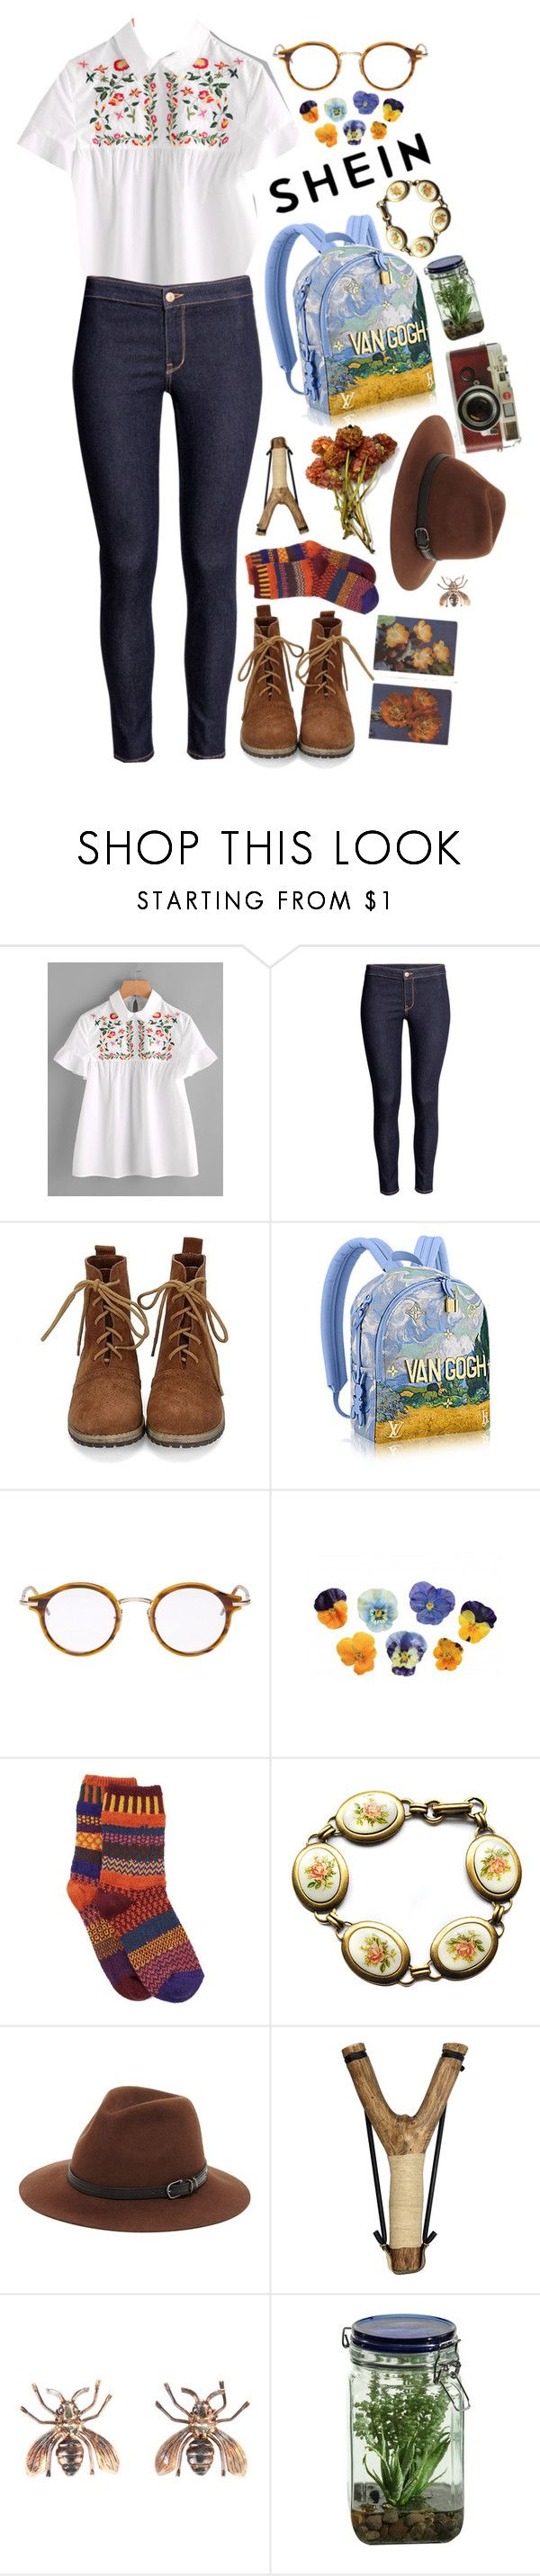 """""""A Field of Dreams"""" by lbenigni ❤ liked on Polyvore featuring Thom Browne, Solmate Socks, Parlor, Sole Society, Vernissage, Leica and Alöe"""